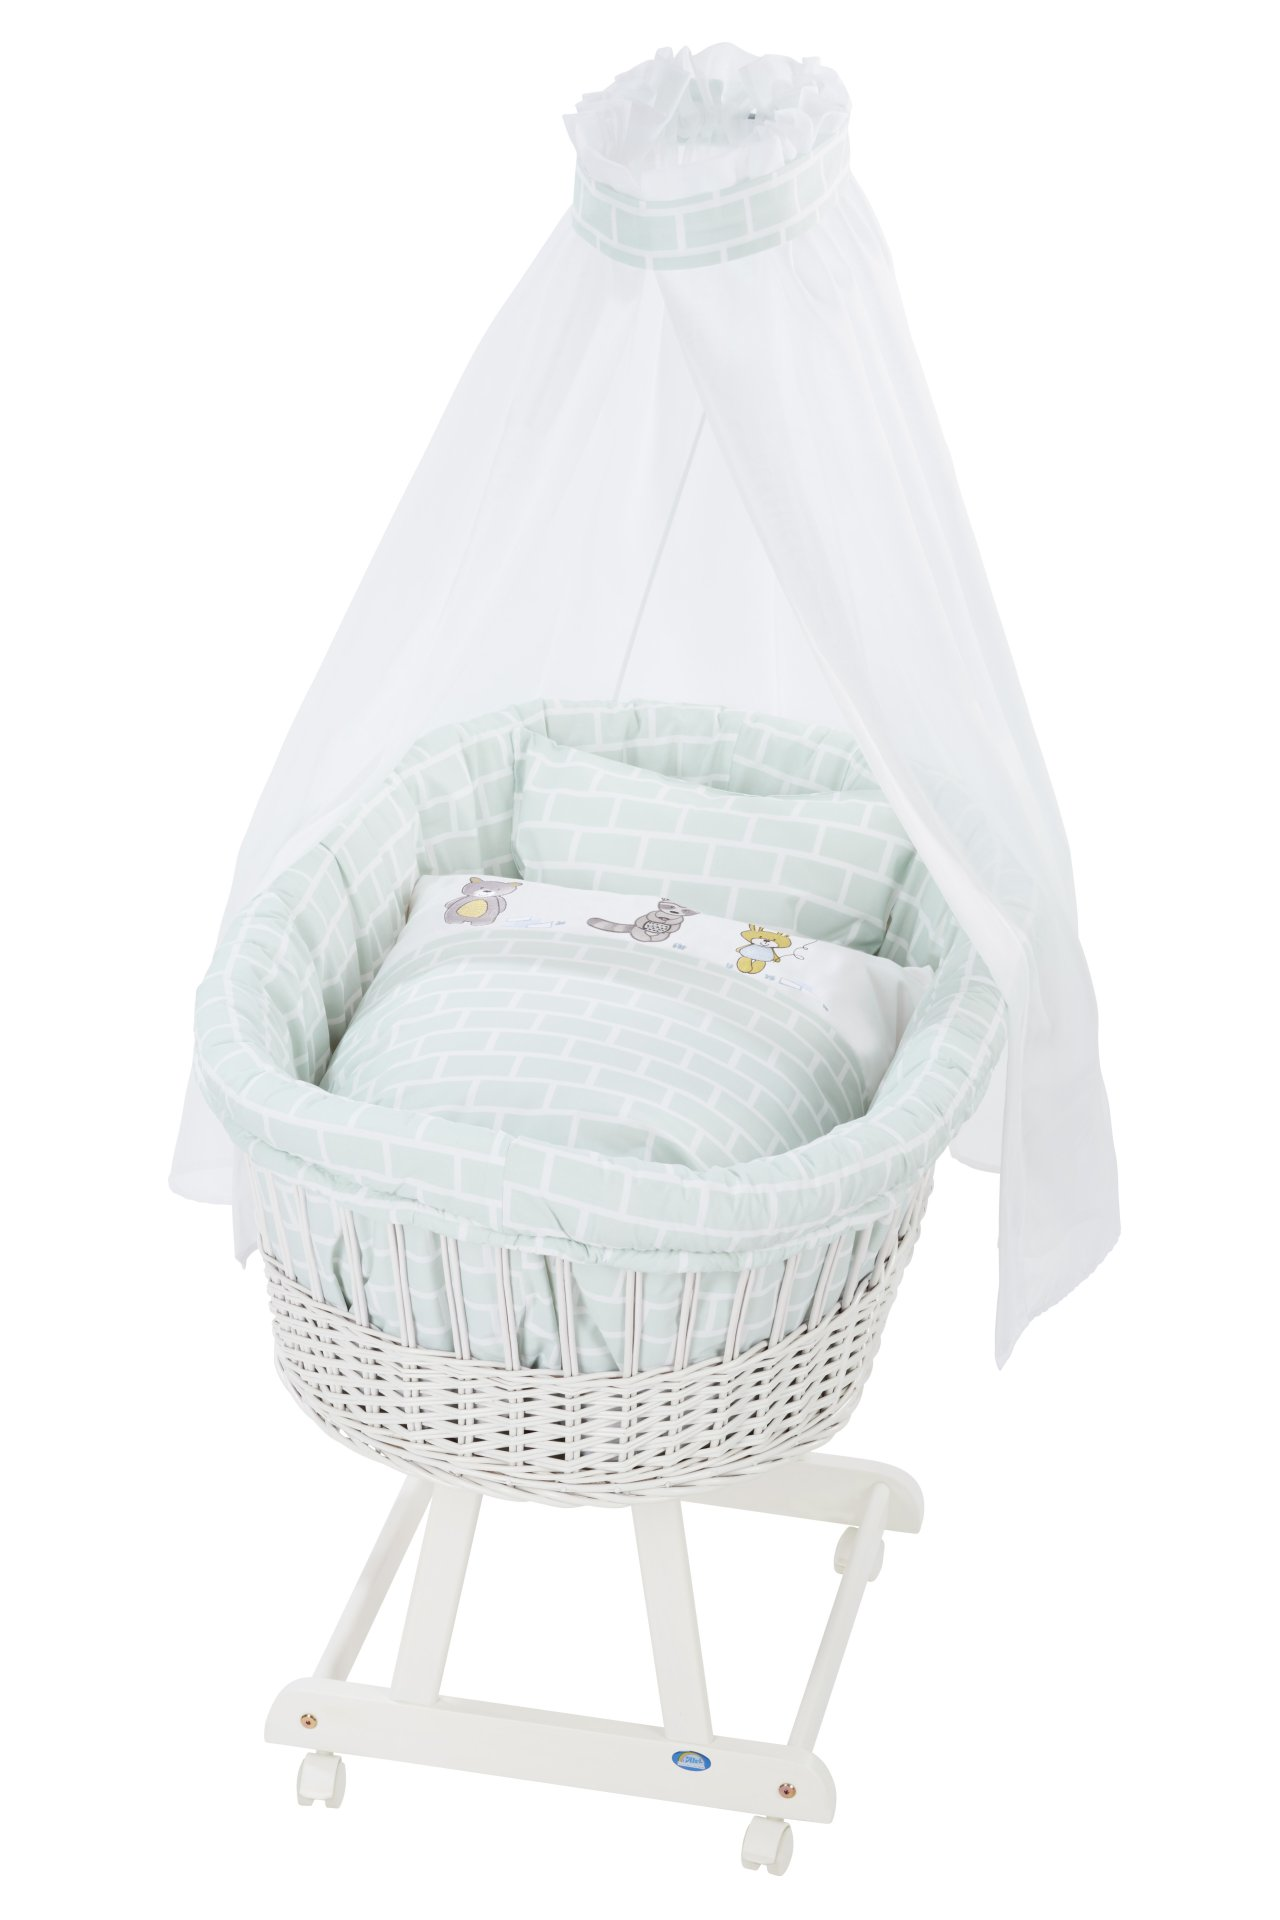 alvi complete set bassinet birthe with xl lying surface 2019 my friends wei buy at